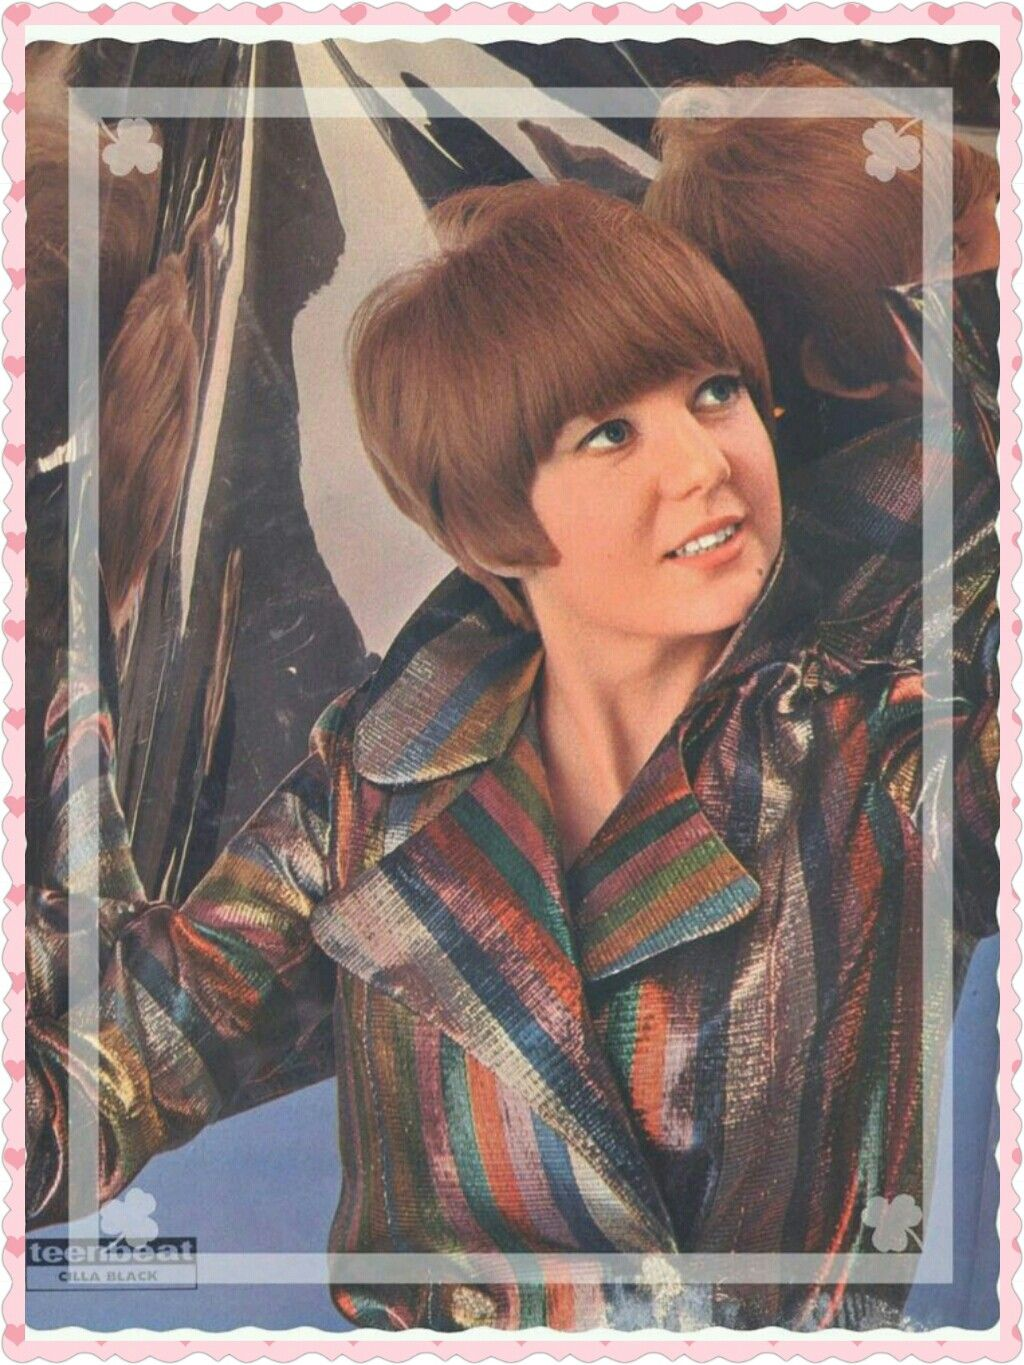 Pin By Daisylennon On Lulu In 2020 Cilla Black Psychedelic Fashion 60s And 70s Fashion